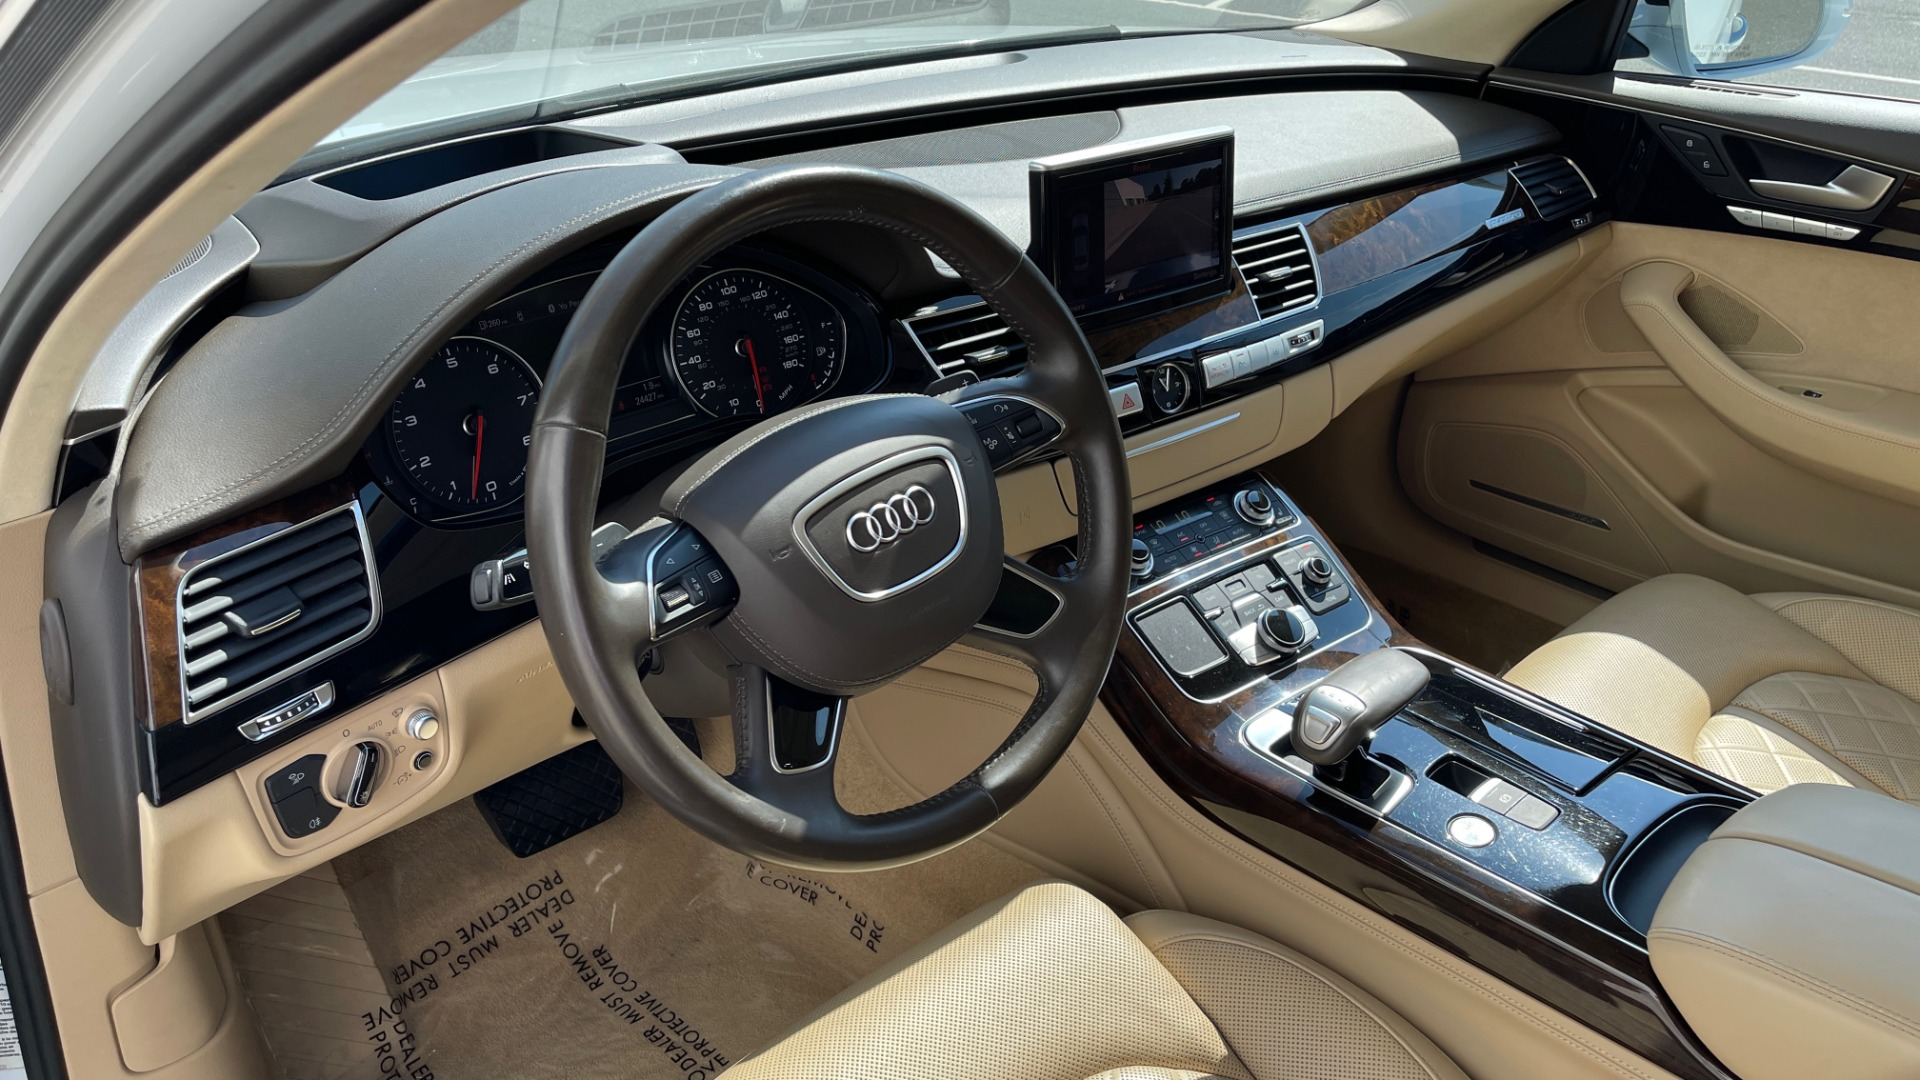 Used 2018 Audi A8 L SPORT 4.0T / EXECUTIVE PKG / NAV / BOSE / SUNROOF / REARVIEW for sale Sold at Formula Imports in Charlotte NC 28227 33